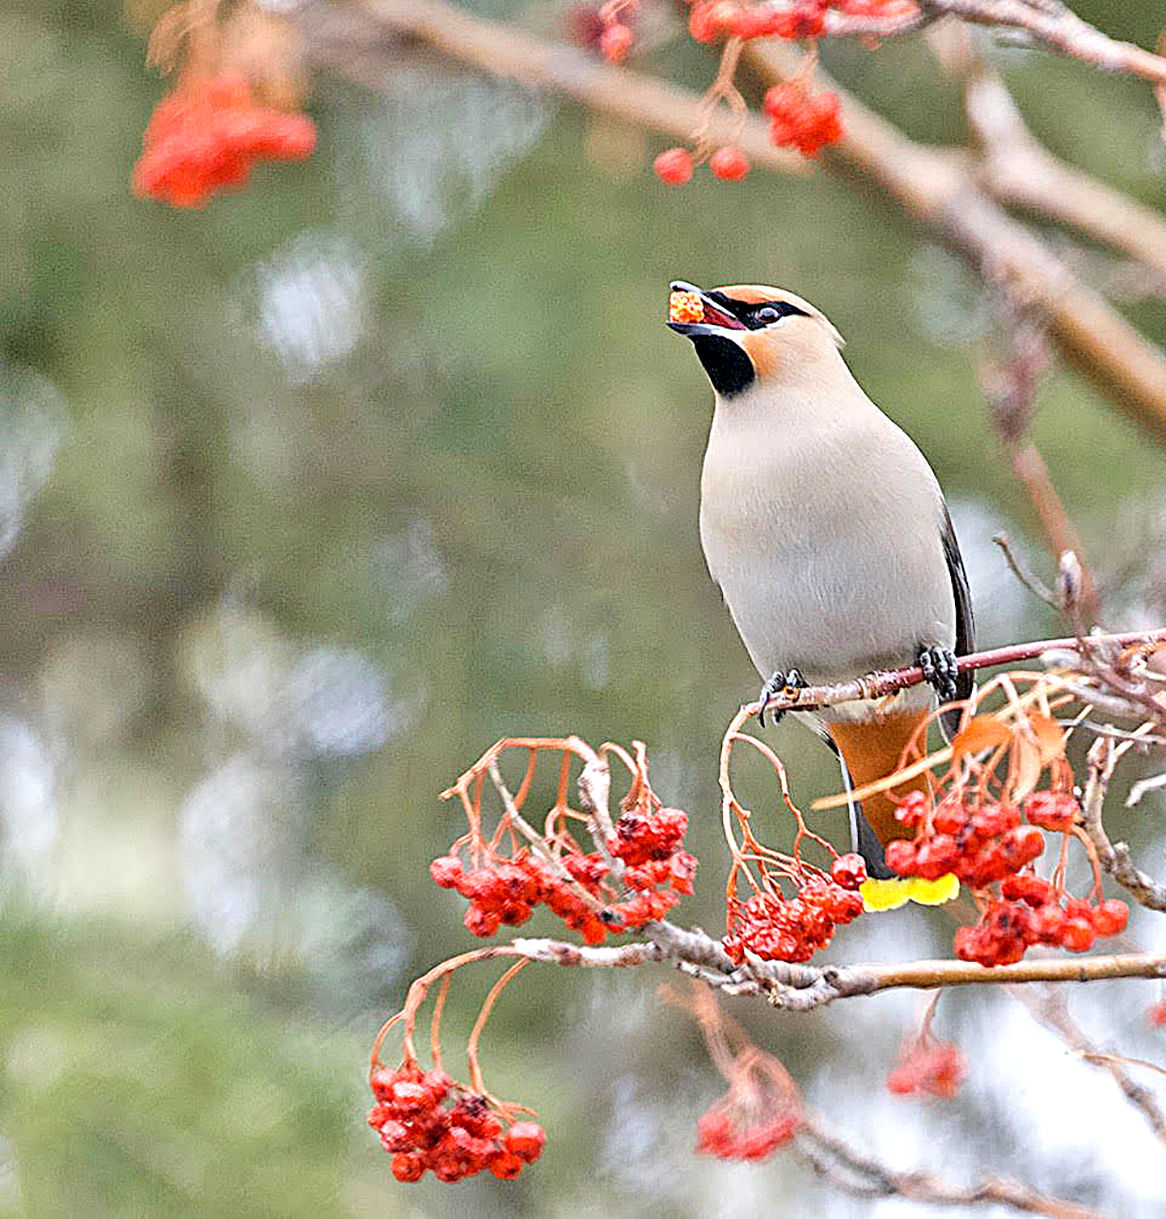 Bohemian waxwing with a berry